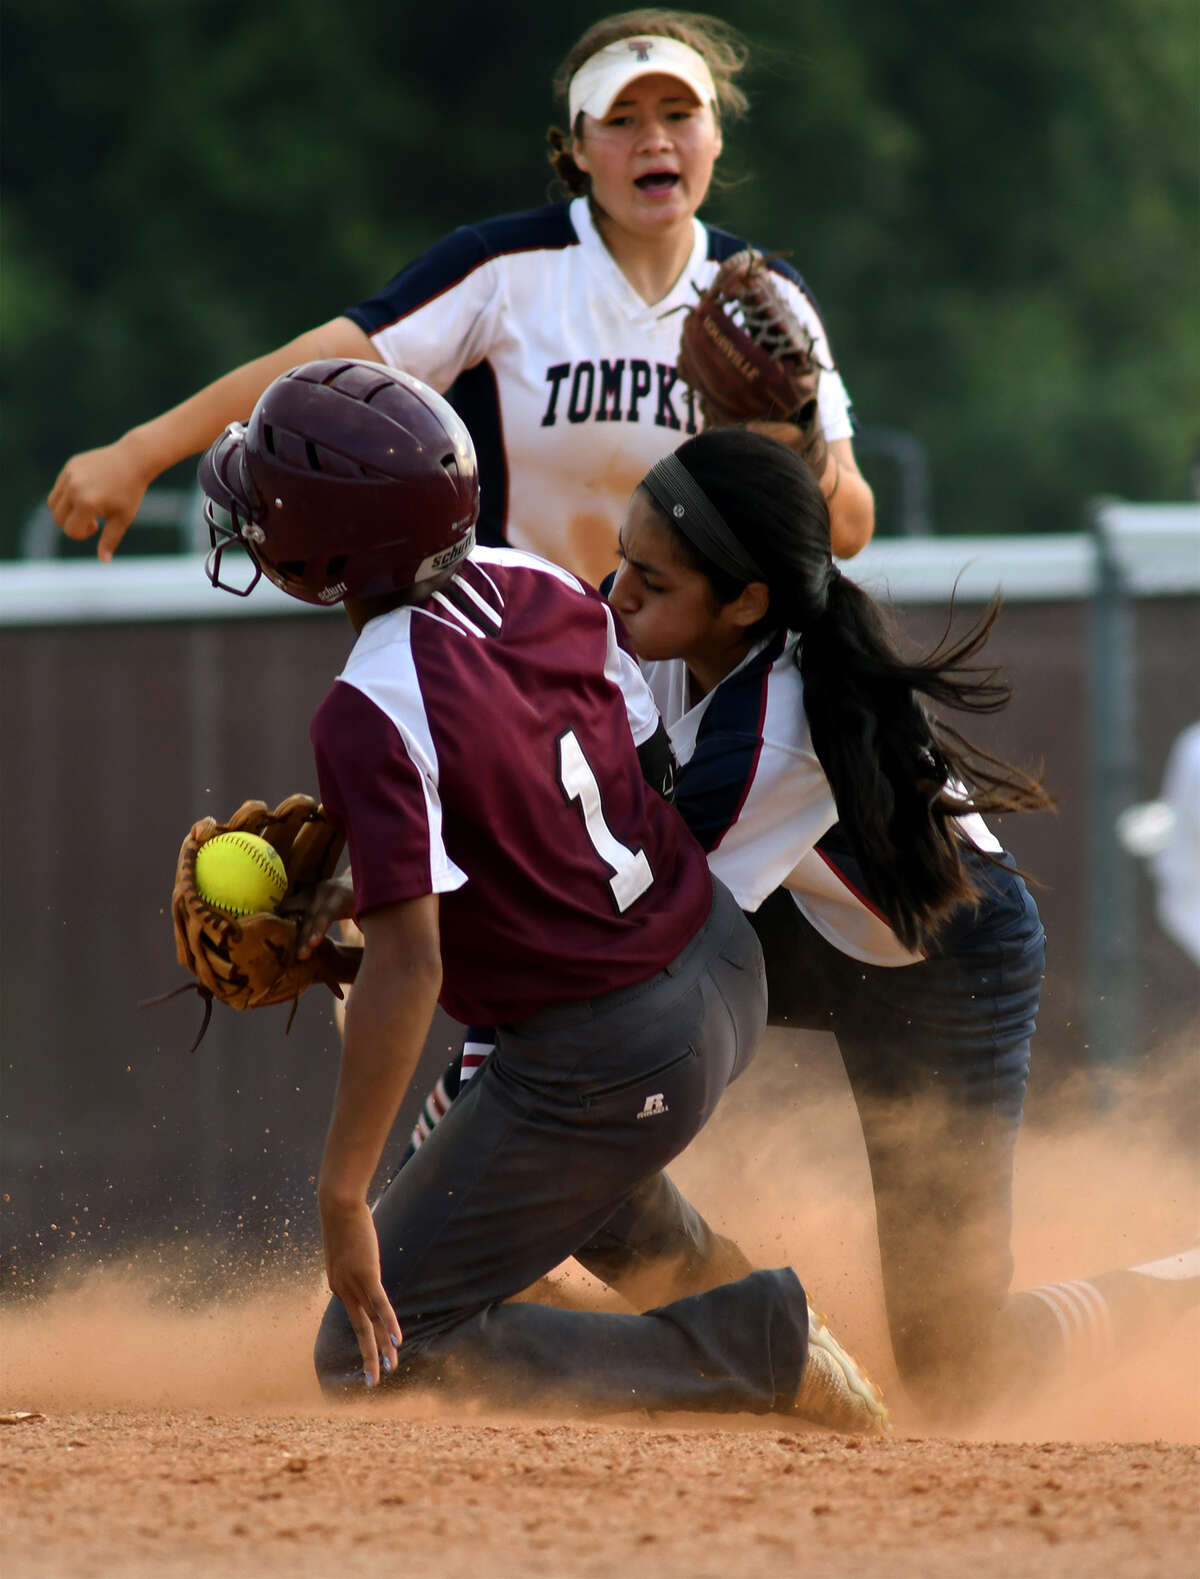 Tompkins freshman shortstop Kat Ibarra, right, puts the tag on Kempner baserunner Star Ferguson after she strayed too far away from the 2nd base bag on a play in the bottom of the 5th inning in game two of their Region III-6A Bi-District Softball playoff series match-up at Kempner High School on Friday, April 28, 2017. (Photo by Jerry Baker/Freelance)